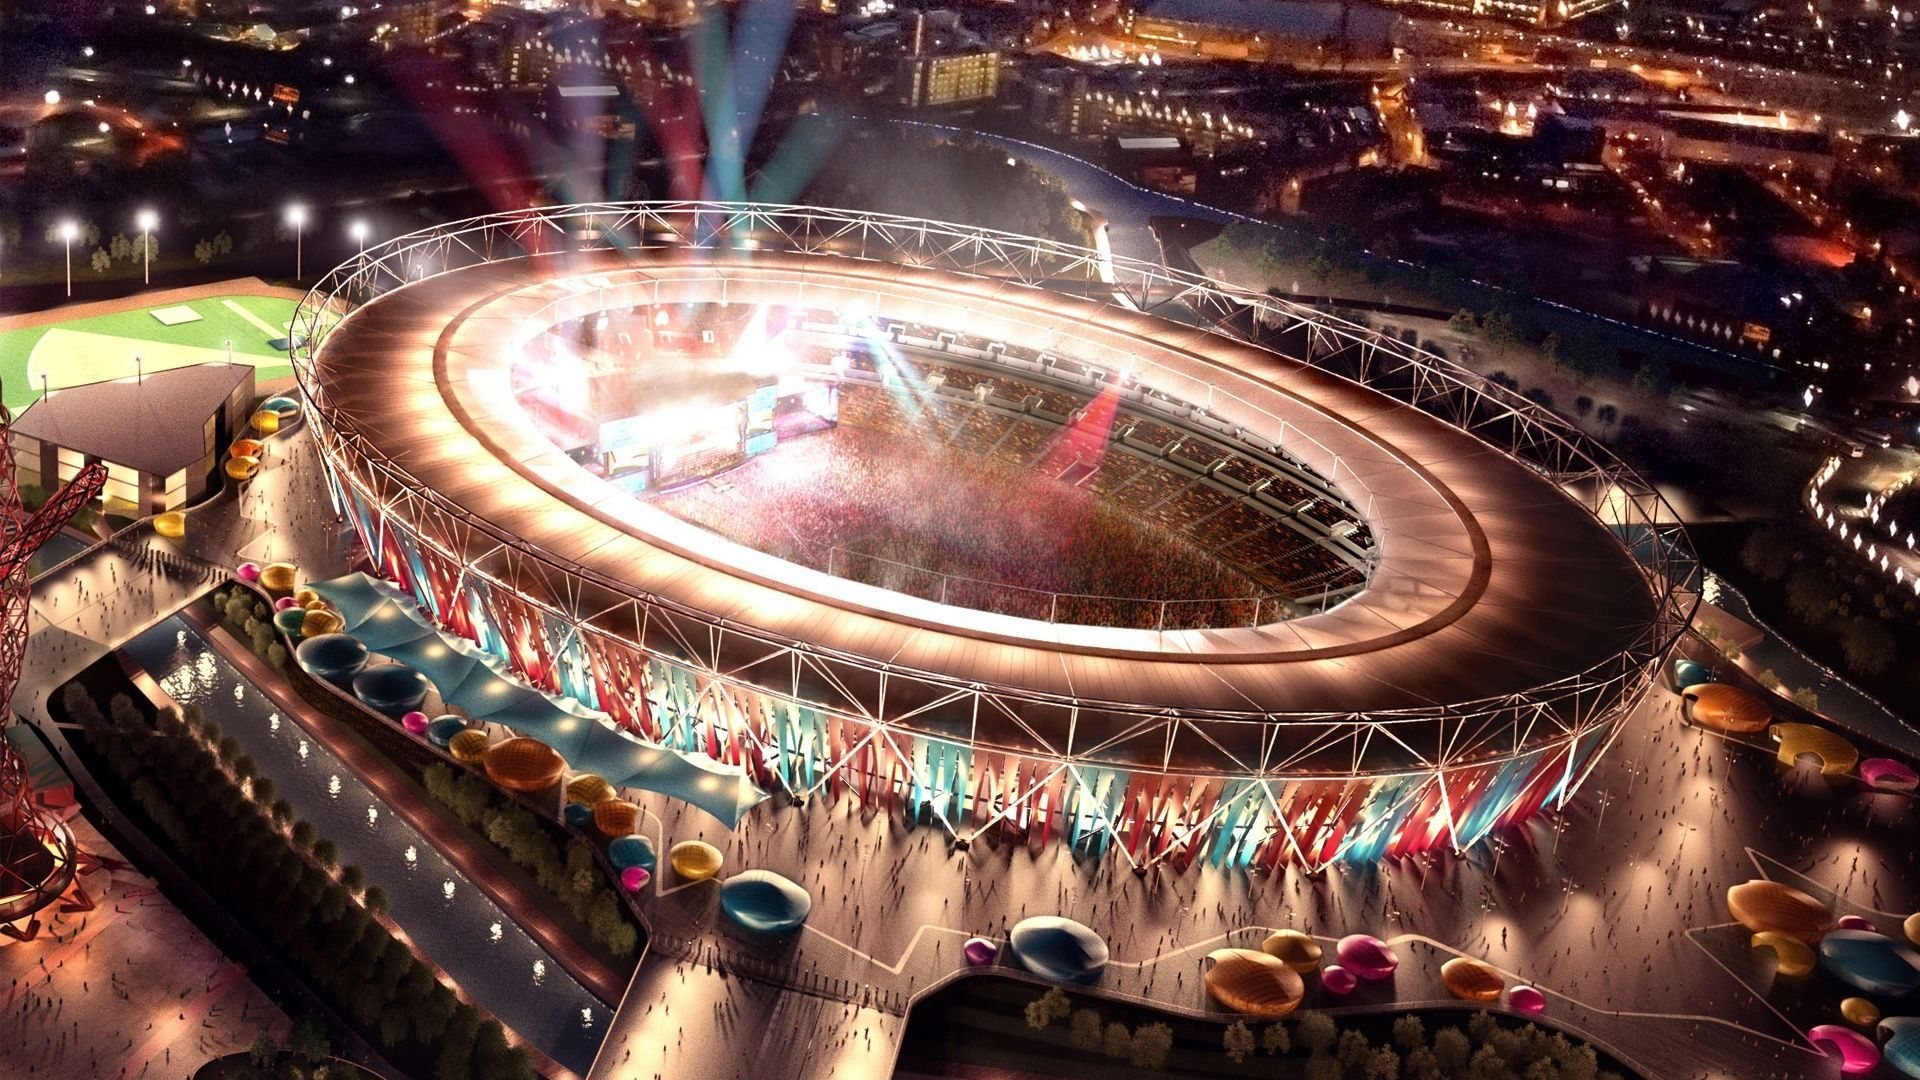 london-olympic-stadium-full-1080p-hd-wallpaper.jpg